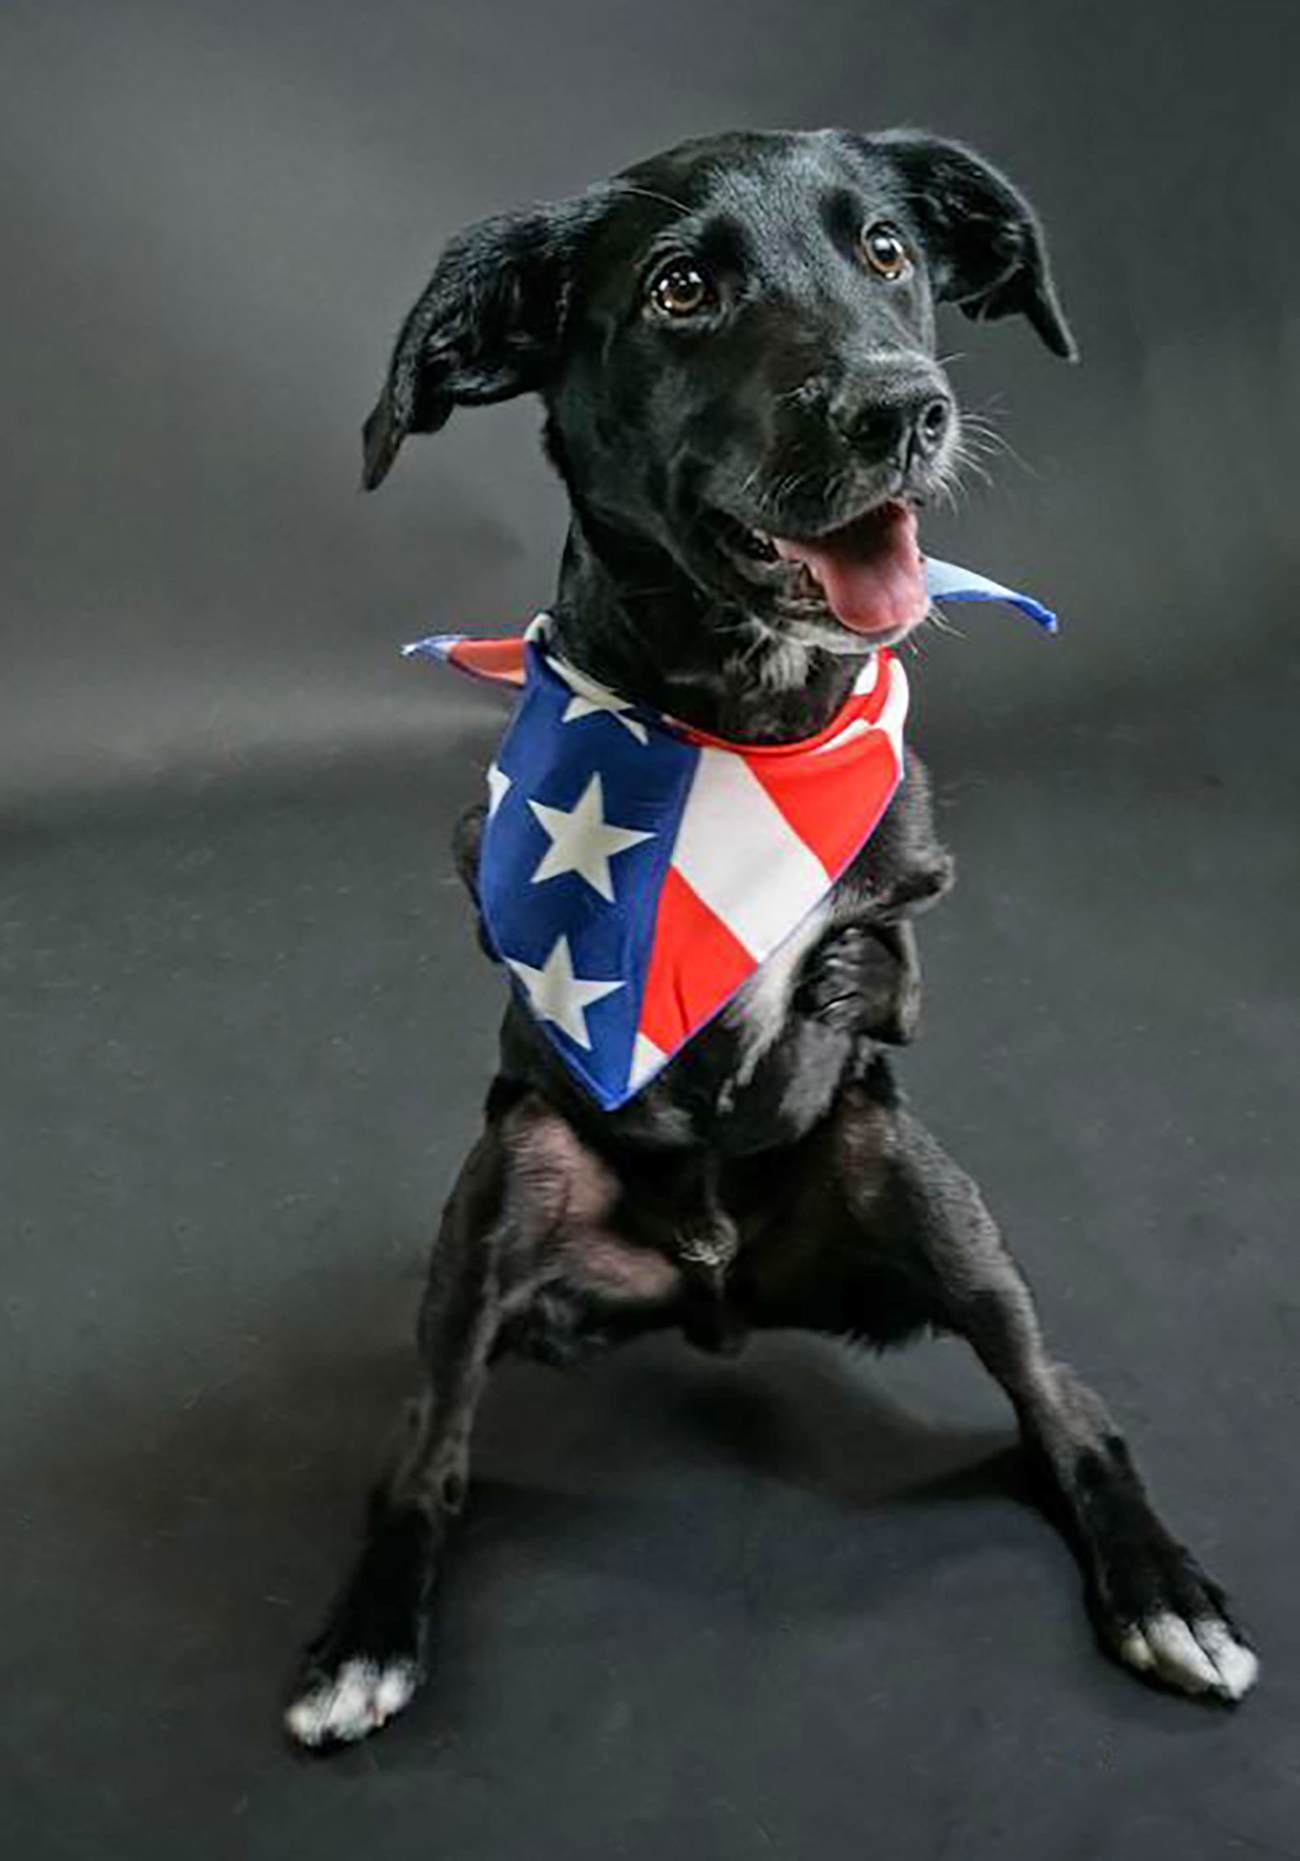 Jett, a differently abled black puppy, sits and smiles for the camera with colorful bandana on